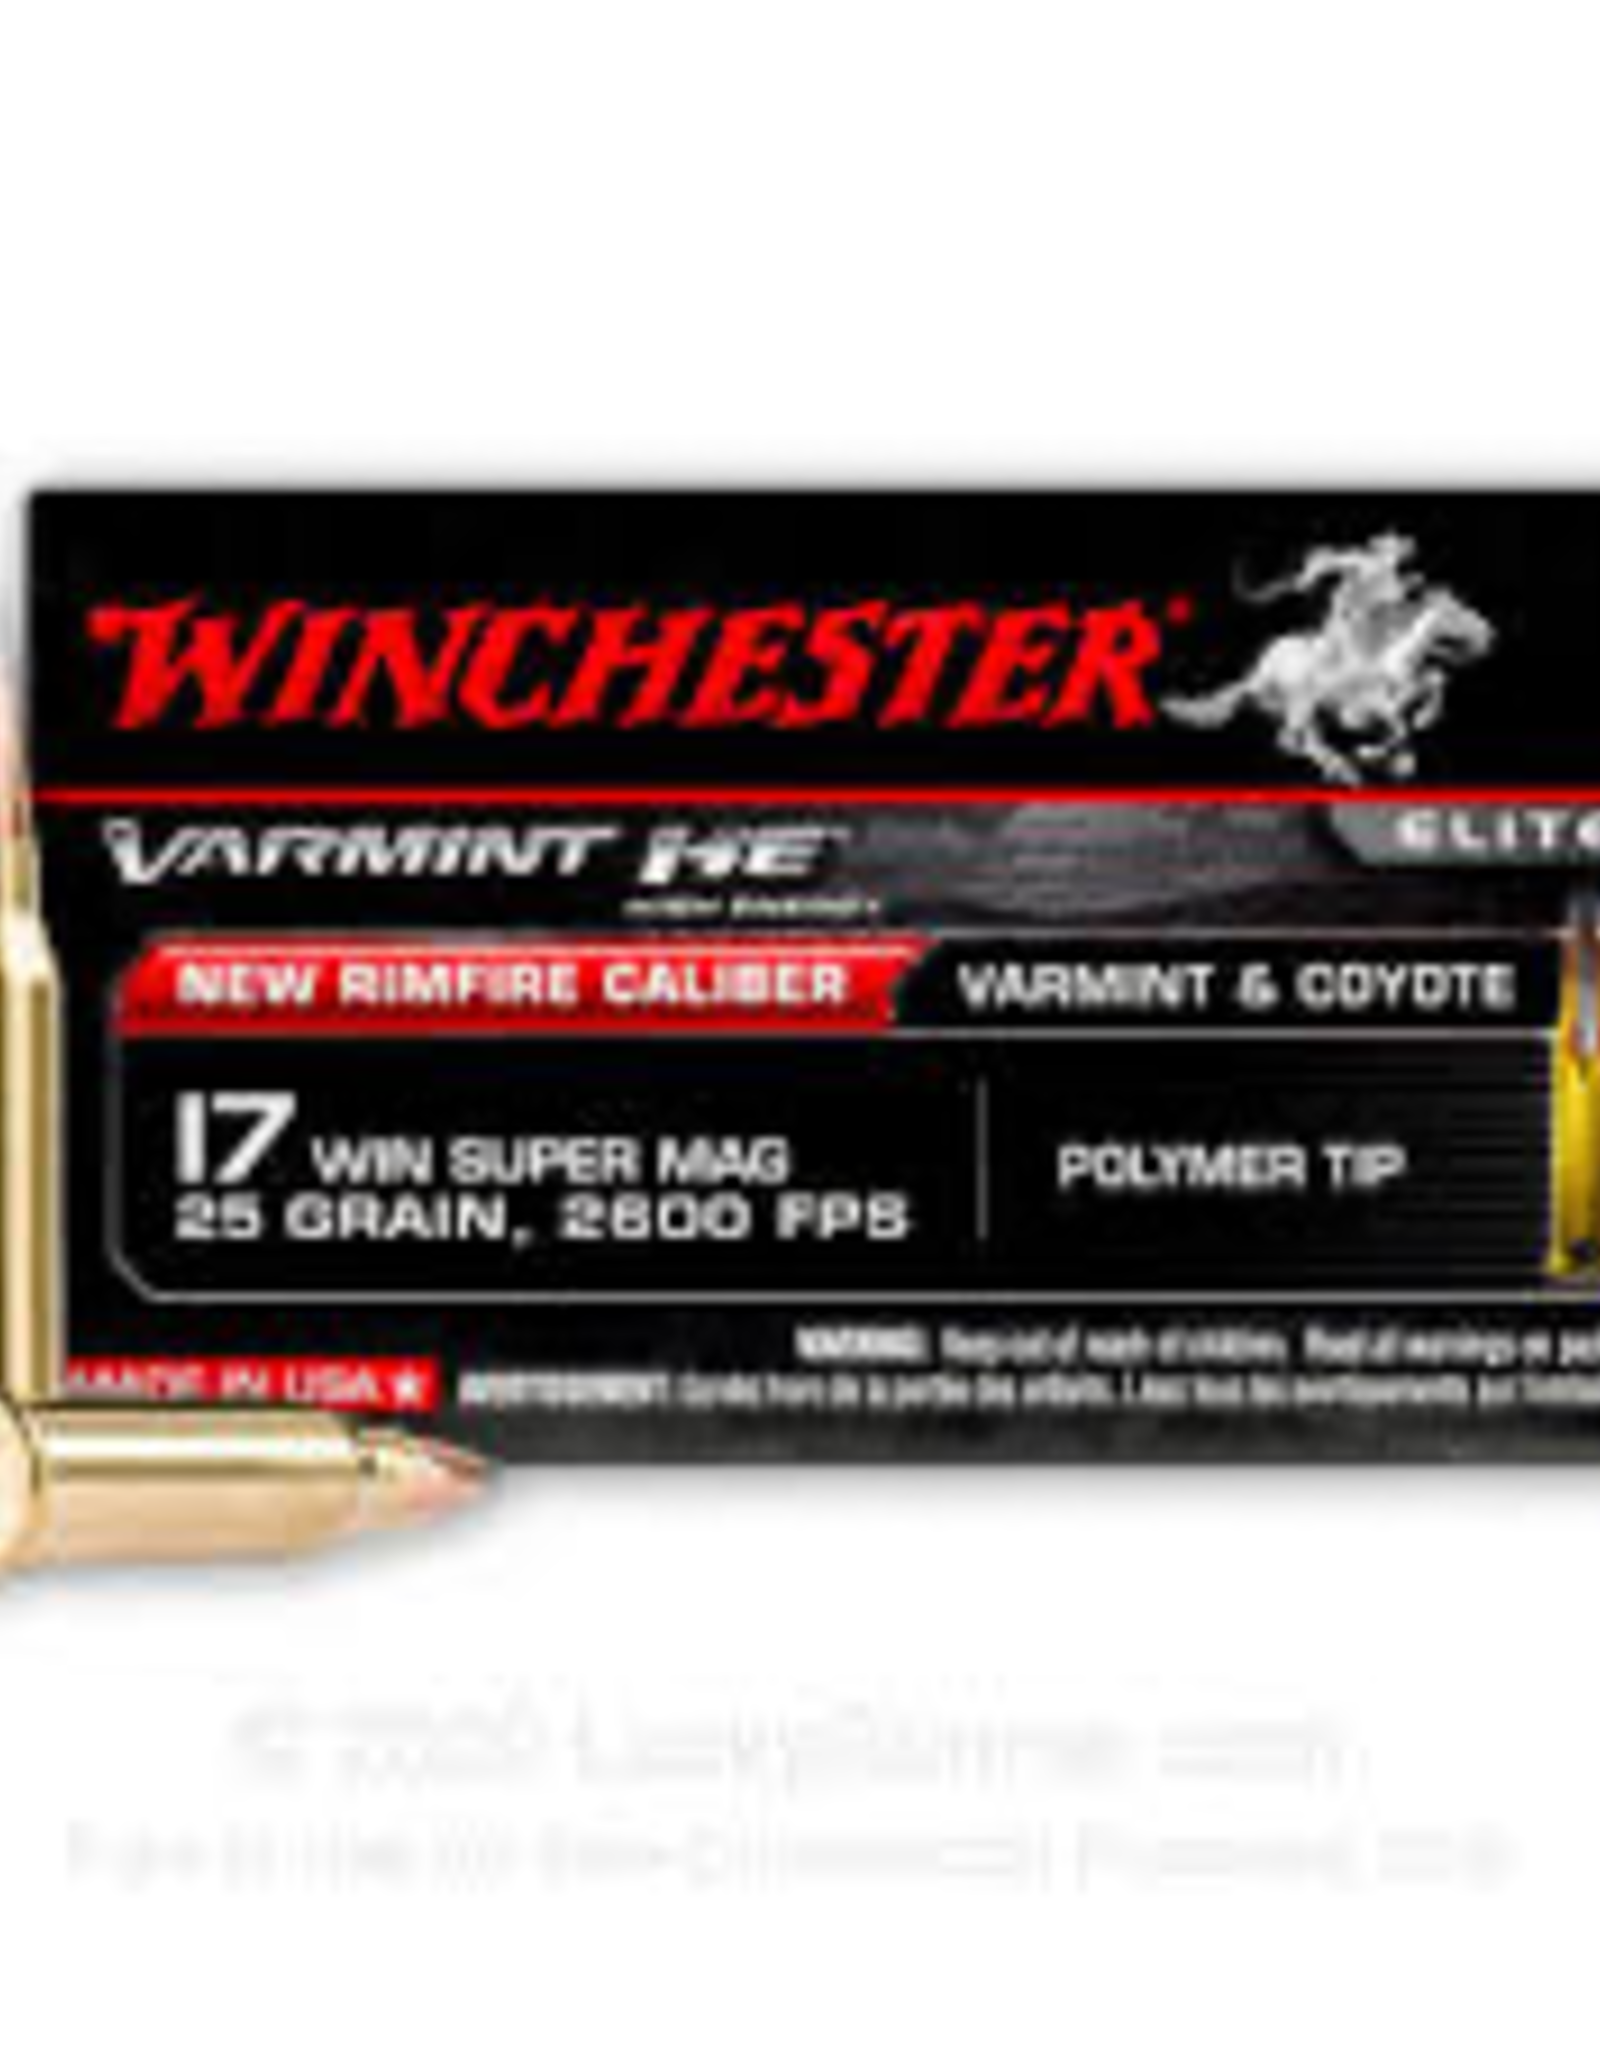 Winchester 17 WSM 25 GR 2600 FPS